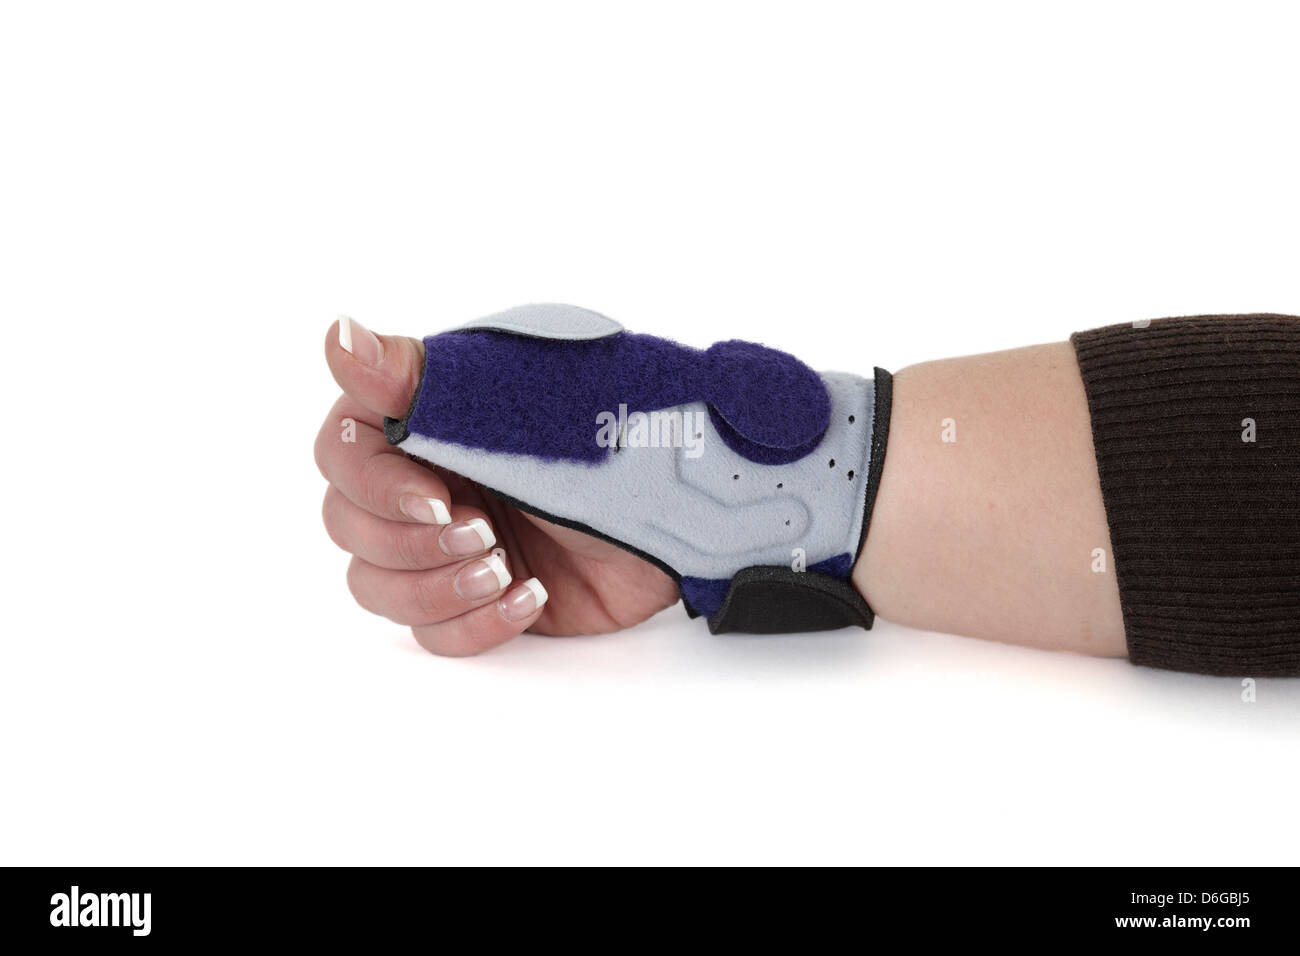 Wrist bandage shown on a woman's hand. Wrist orthosis for treating a carpal tunnel Syndrome, isolated on white. - Stock Image